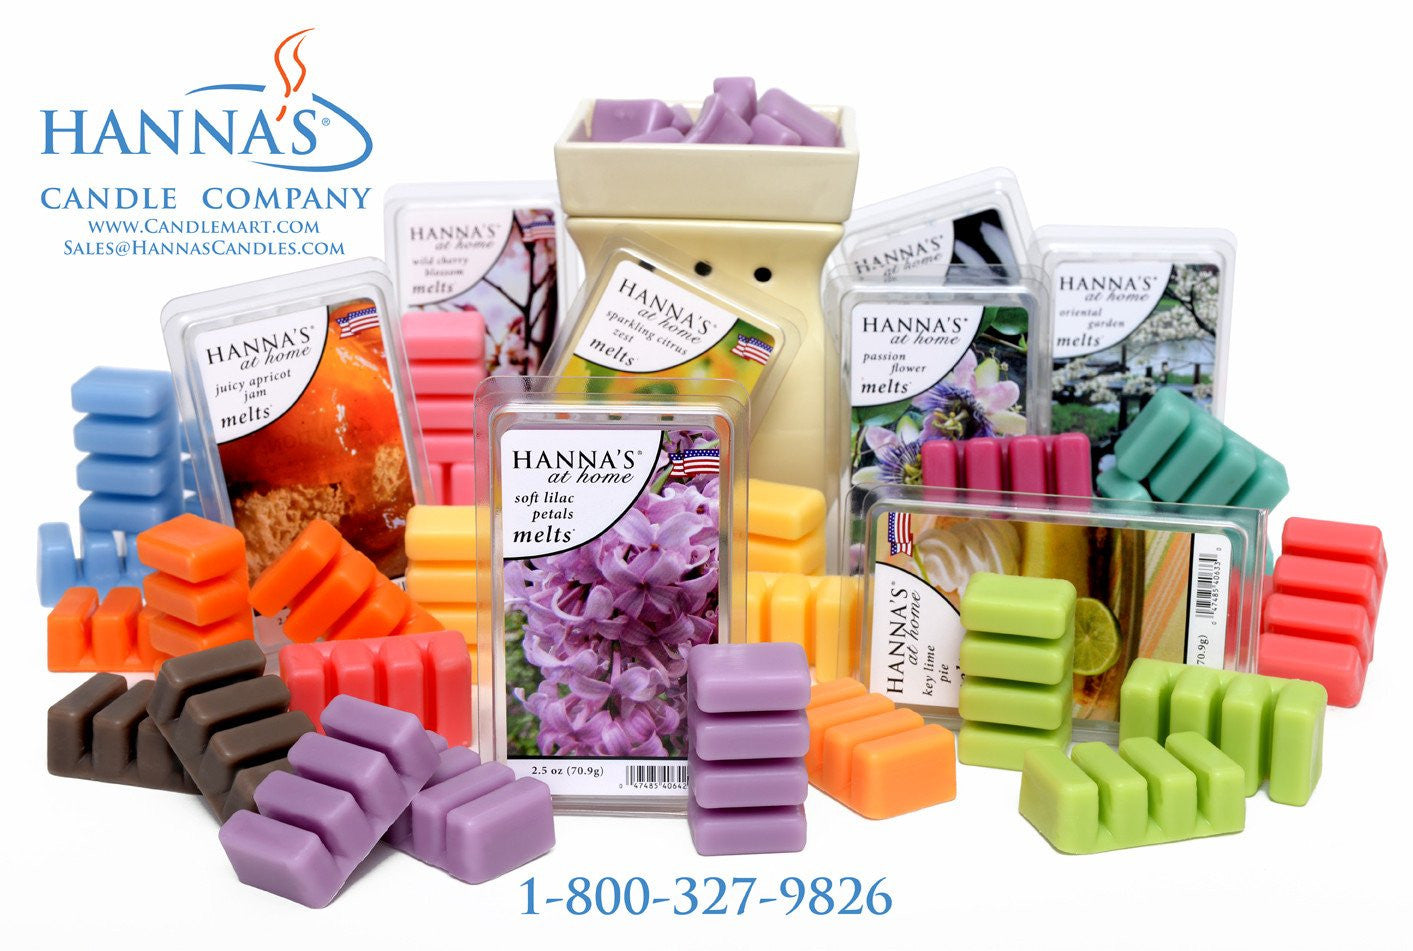 Key Lime Pie Scented Wax Melts - Candlemart.com